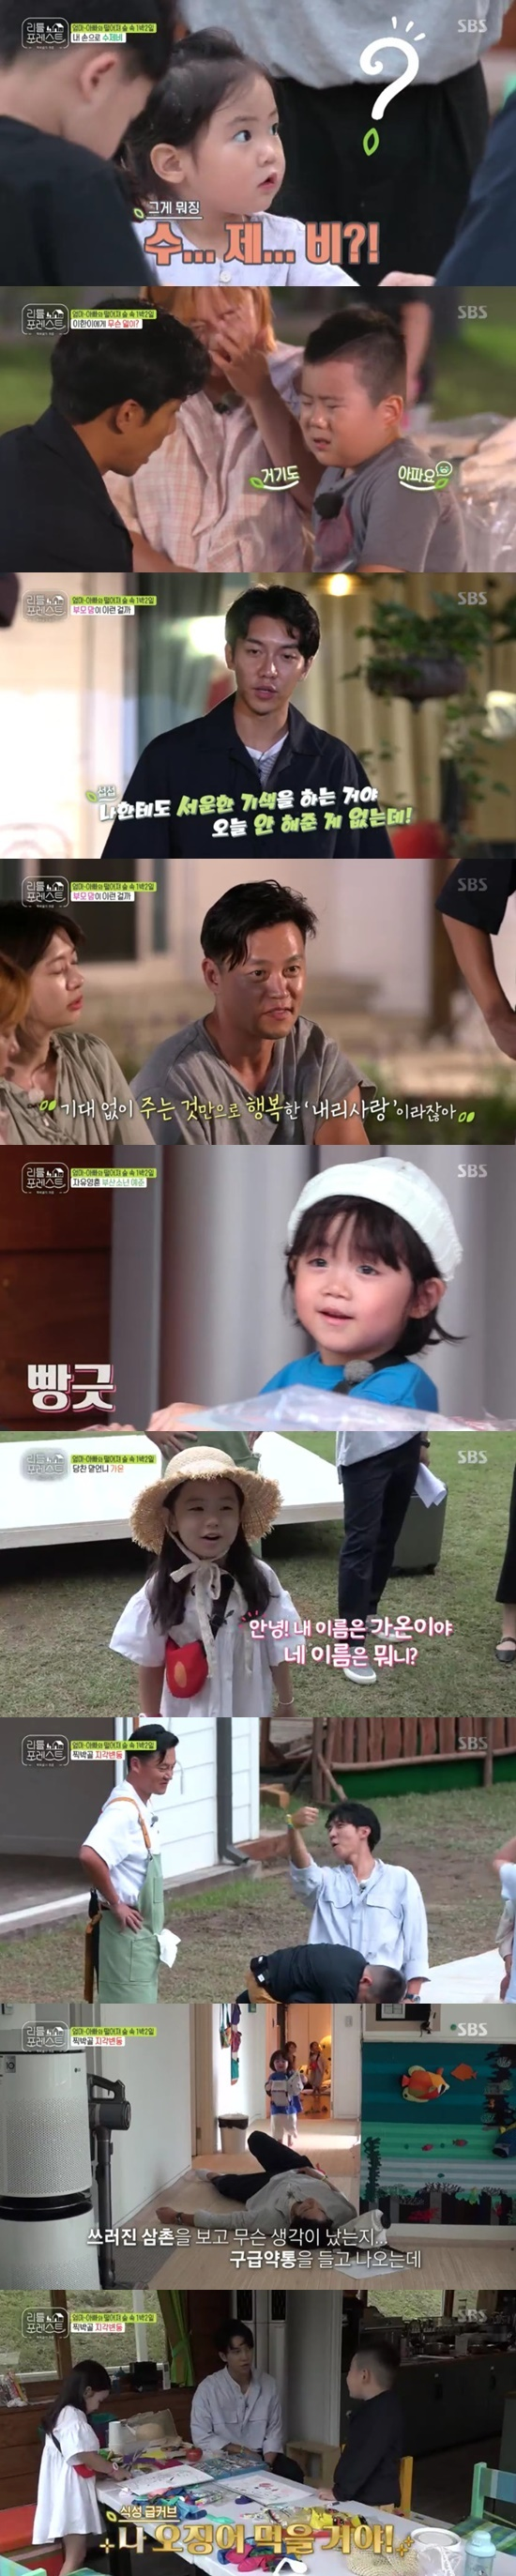 <p>3 Days Night broadcast SBS Mon, Tue art program Little Forestin the water finishing the little people appear.</p><p>The kids all get together in Sujebi, you created it. Children are Sujebi, but directly created and the fun had. Brooke I madeand delicious Sujebi and ate. This is for the Sujebi, and one was created, but a few mouth hot not; all to worry him. The ship was sick that was. This is for Lee Seung-gi of persuasion with digestive problems ate.</p><p>Children parents and leaving members a day to finish. Lee Seung-gi is his heart to know that children in the new feelings also handsome and confide in me. This in this in with the I love you, what line, do not expect your. I like that I do stand byline and you said.</p><p>This from the answer of Lee Seung-gi is a brother Brook, but pretty closeline, and your shivered. Lee Seung-gi is in the Brook for each time to prepare, and this with playing him.</p><p>A new day was bright. New little from Busan for standard first arrived. Yes, you are right take off your shoes and adapted. For level a night or so of dinosaur-ish interest in and laughed.</p><p>The second new little water have emerged. The temperature is taken every country I went to. and a bright aura all laugh was.</p><p>Brooke and Grace arrived, the members, homemade necklace and bracelet was a gift. Their will be no service down time. Lee Seung-gi is such a this from in gift the bracelet was proud.</p><p>Little People is new friends and mingle with played. Jung So Min and Lee Seung-gi gun and let the kids laugh and feel happy. Lee Seung-gi is the endlessly repeated collapse on the role that the small people gun away and said,scream said. After Lee Seung-gi has chosen the wrong was and but soap was.</p><p>Yes, you are tired of writing with Lee Seung-gi worry and sore throat drugs, to sprinkle all laugh was.</p><p>This for the heating and drawing pictures together and create and Goldsmith became friends with. Cuttlefish have I had this for the Cuttlefish, an